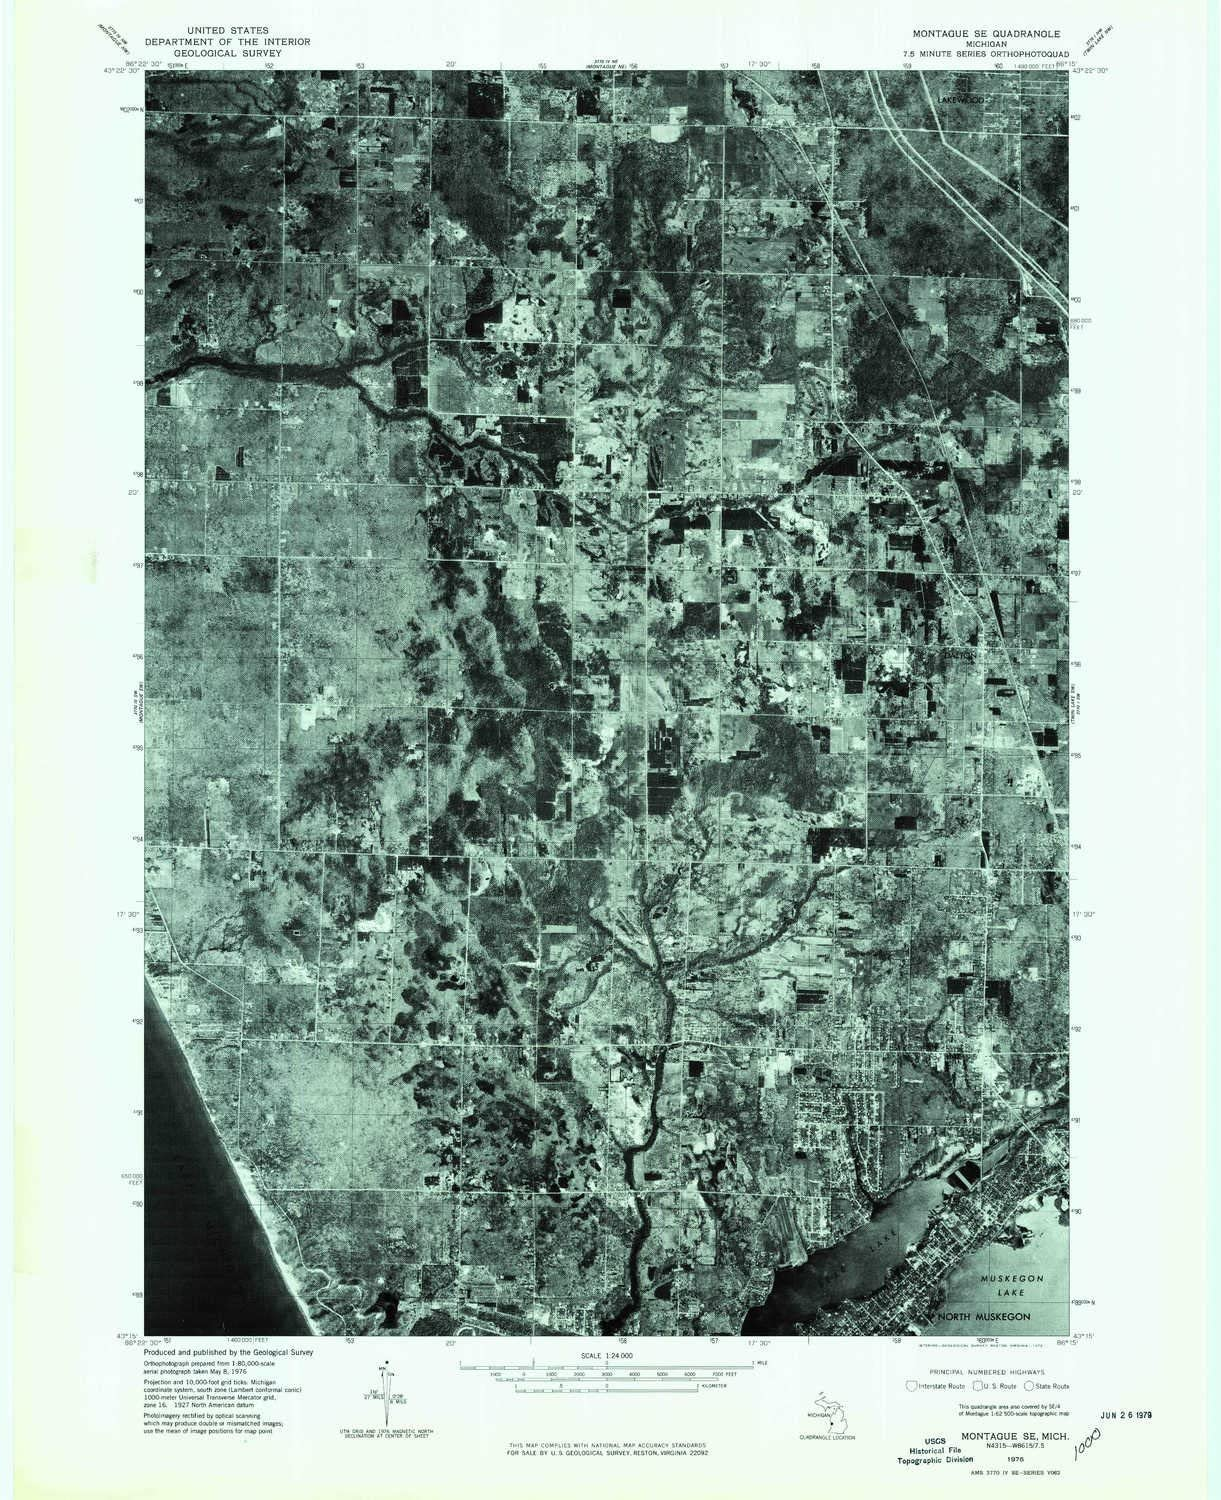 We OFFer at cheap prices YellowMaps Montague SE MI topo map 1:24000 7.5 X Min Scale Attention brand